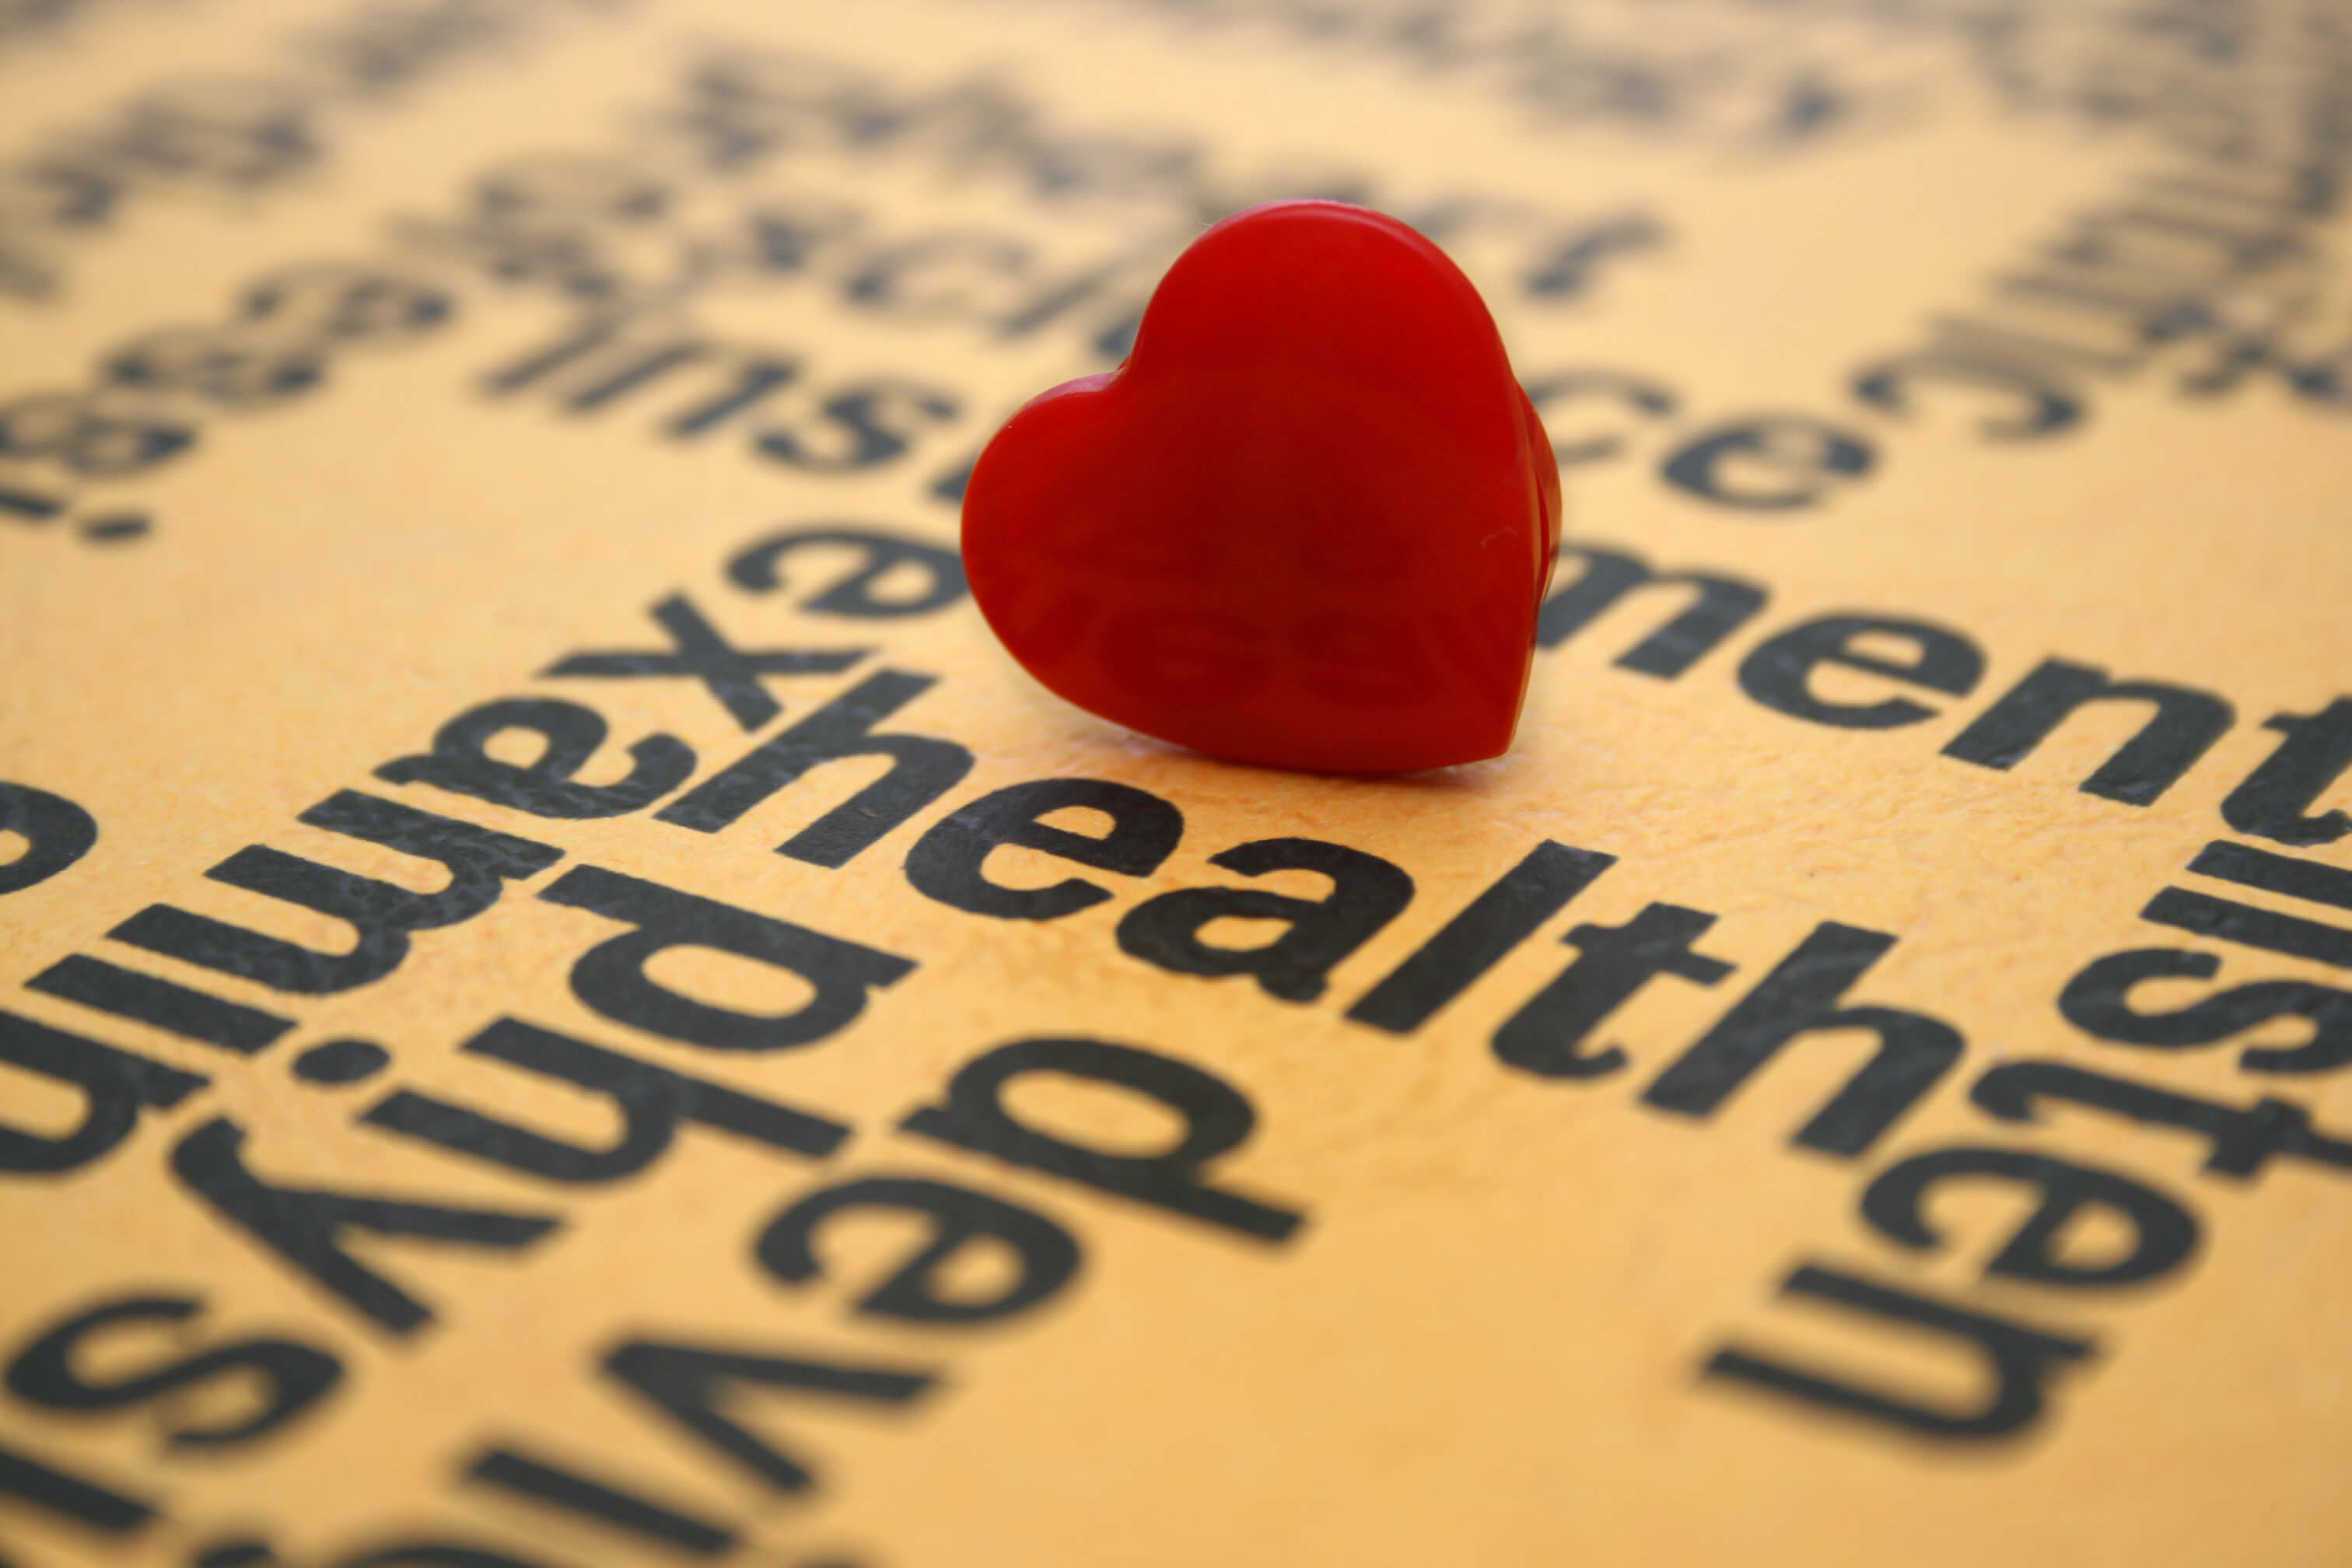 The Heart As The Healer: The Master Wave Produced By The Heart Regulates the Entire Body